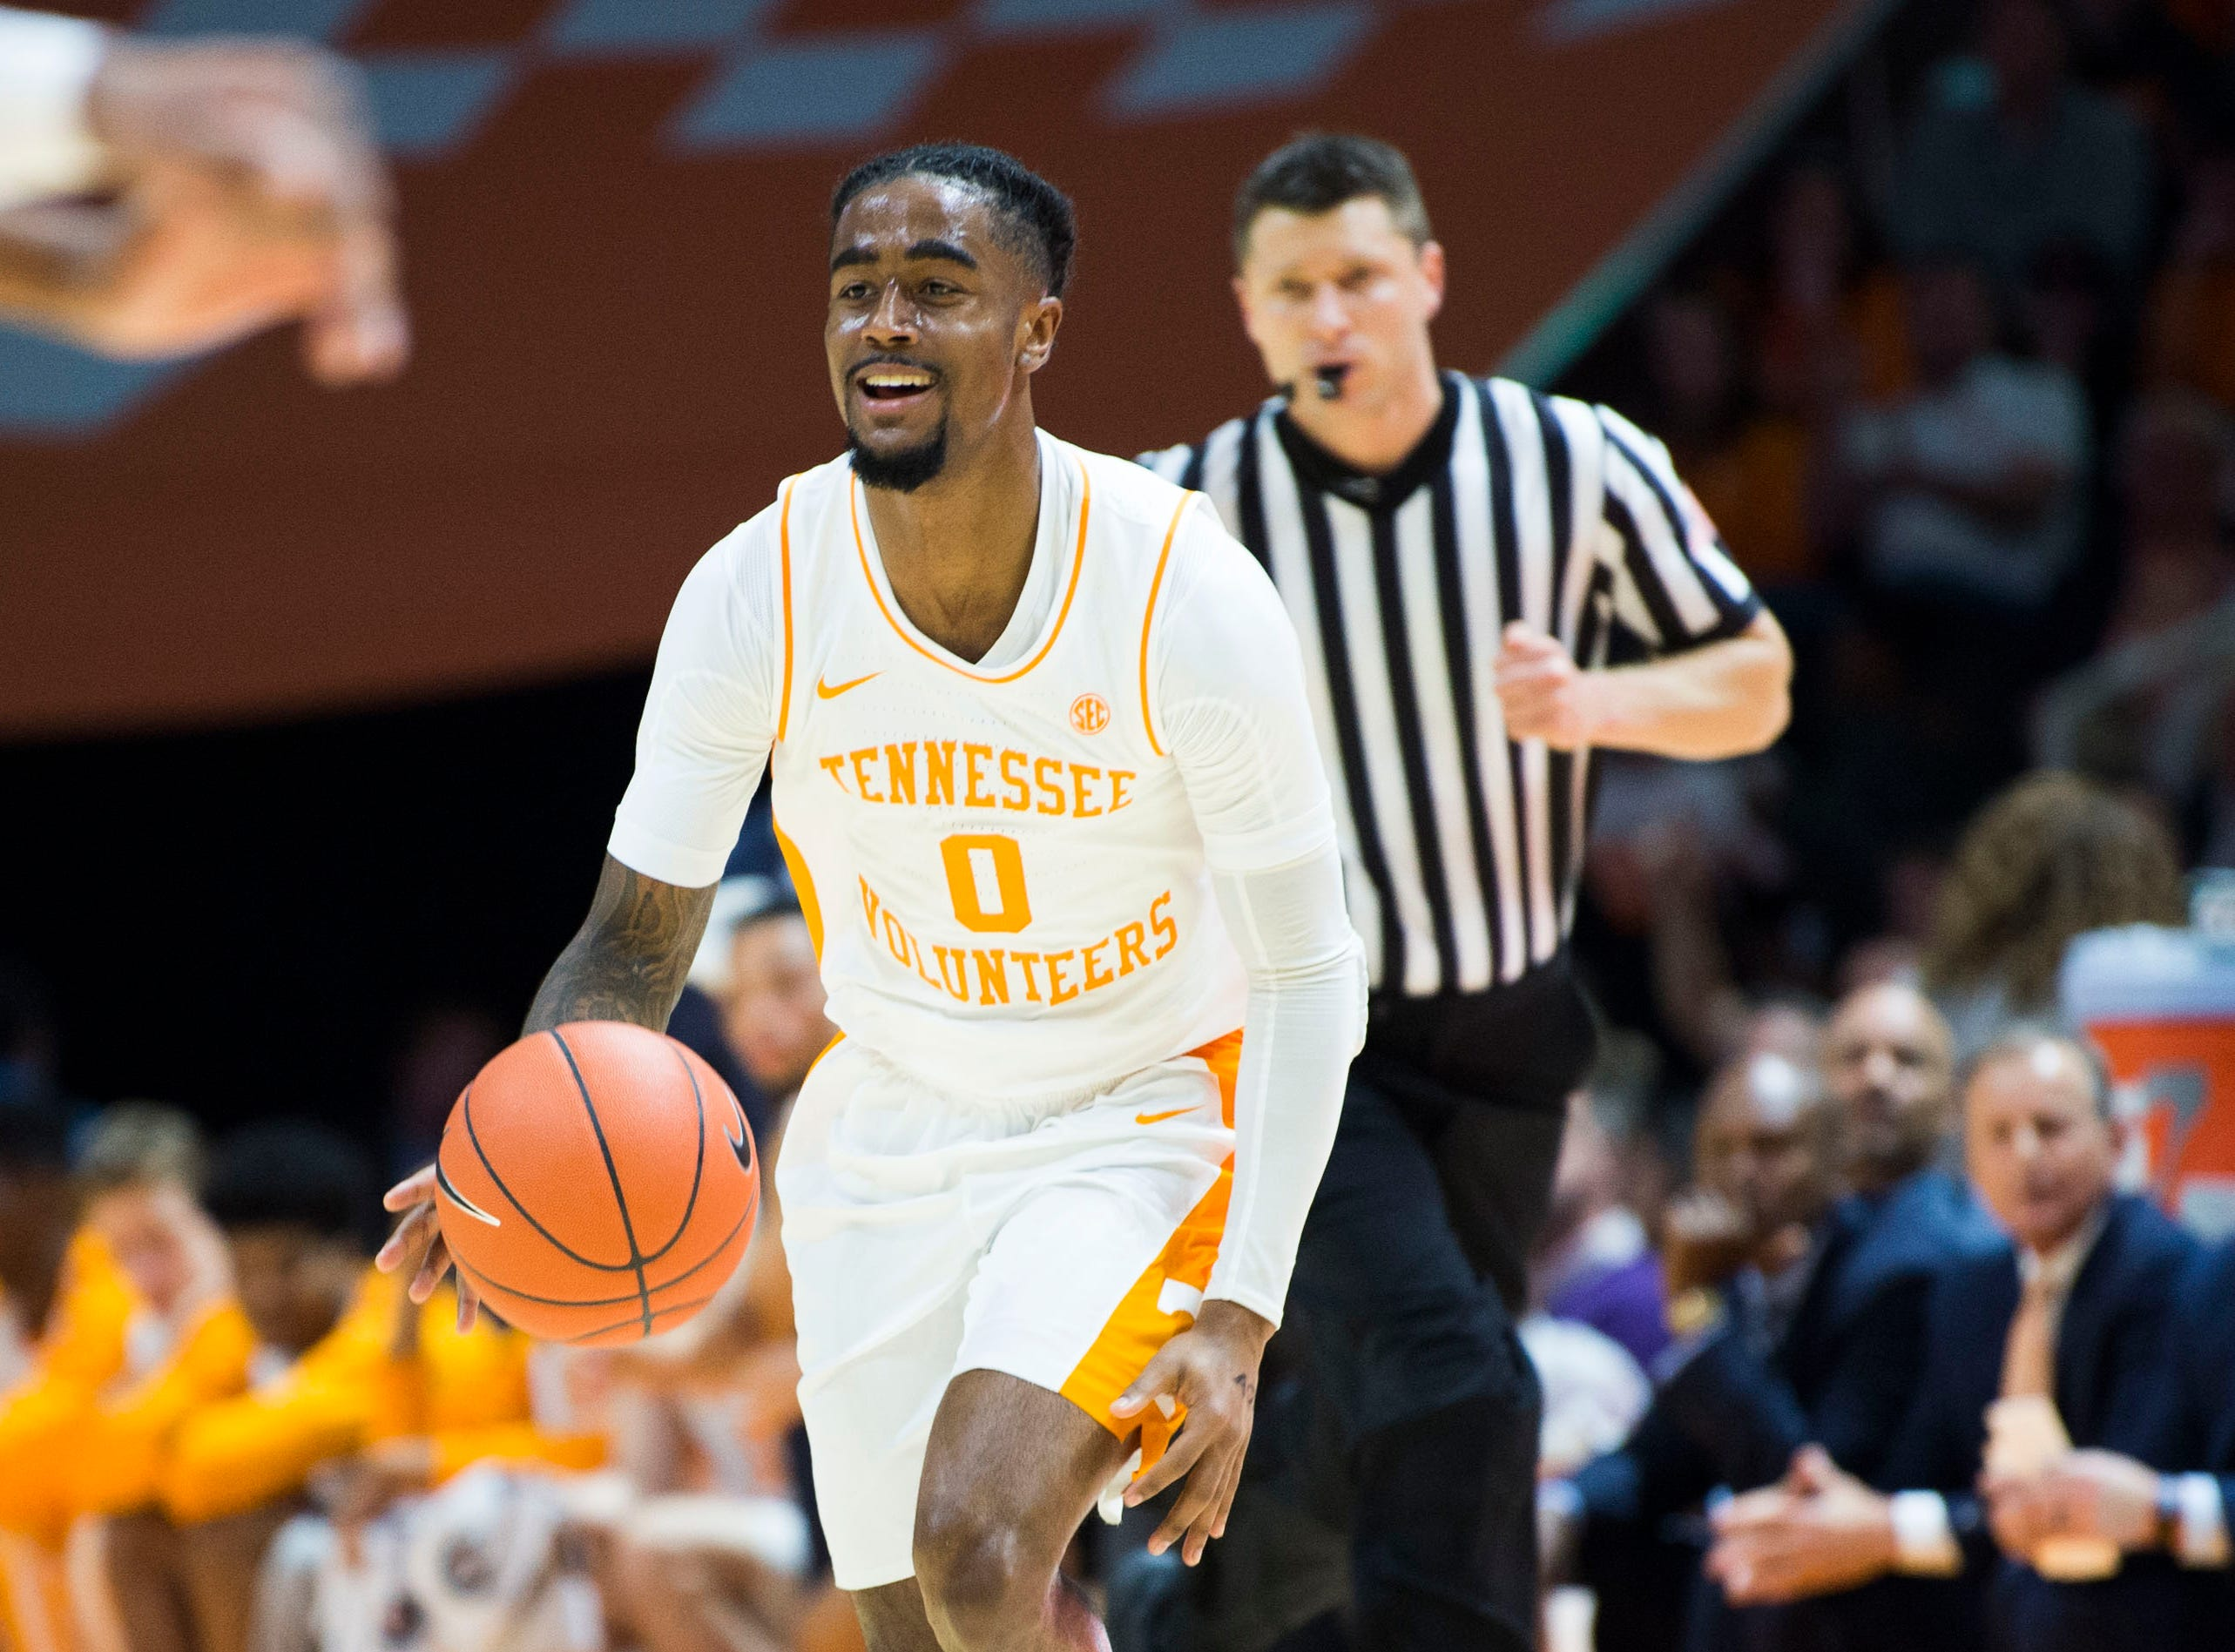 Tennessee's Jordan Bone (0) smiles while dribbling the ball during a college basketball game between Tennessee and Georgia at Thompson-Boling Arena Saturday, Jan. 5, 2019.